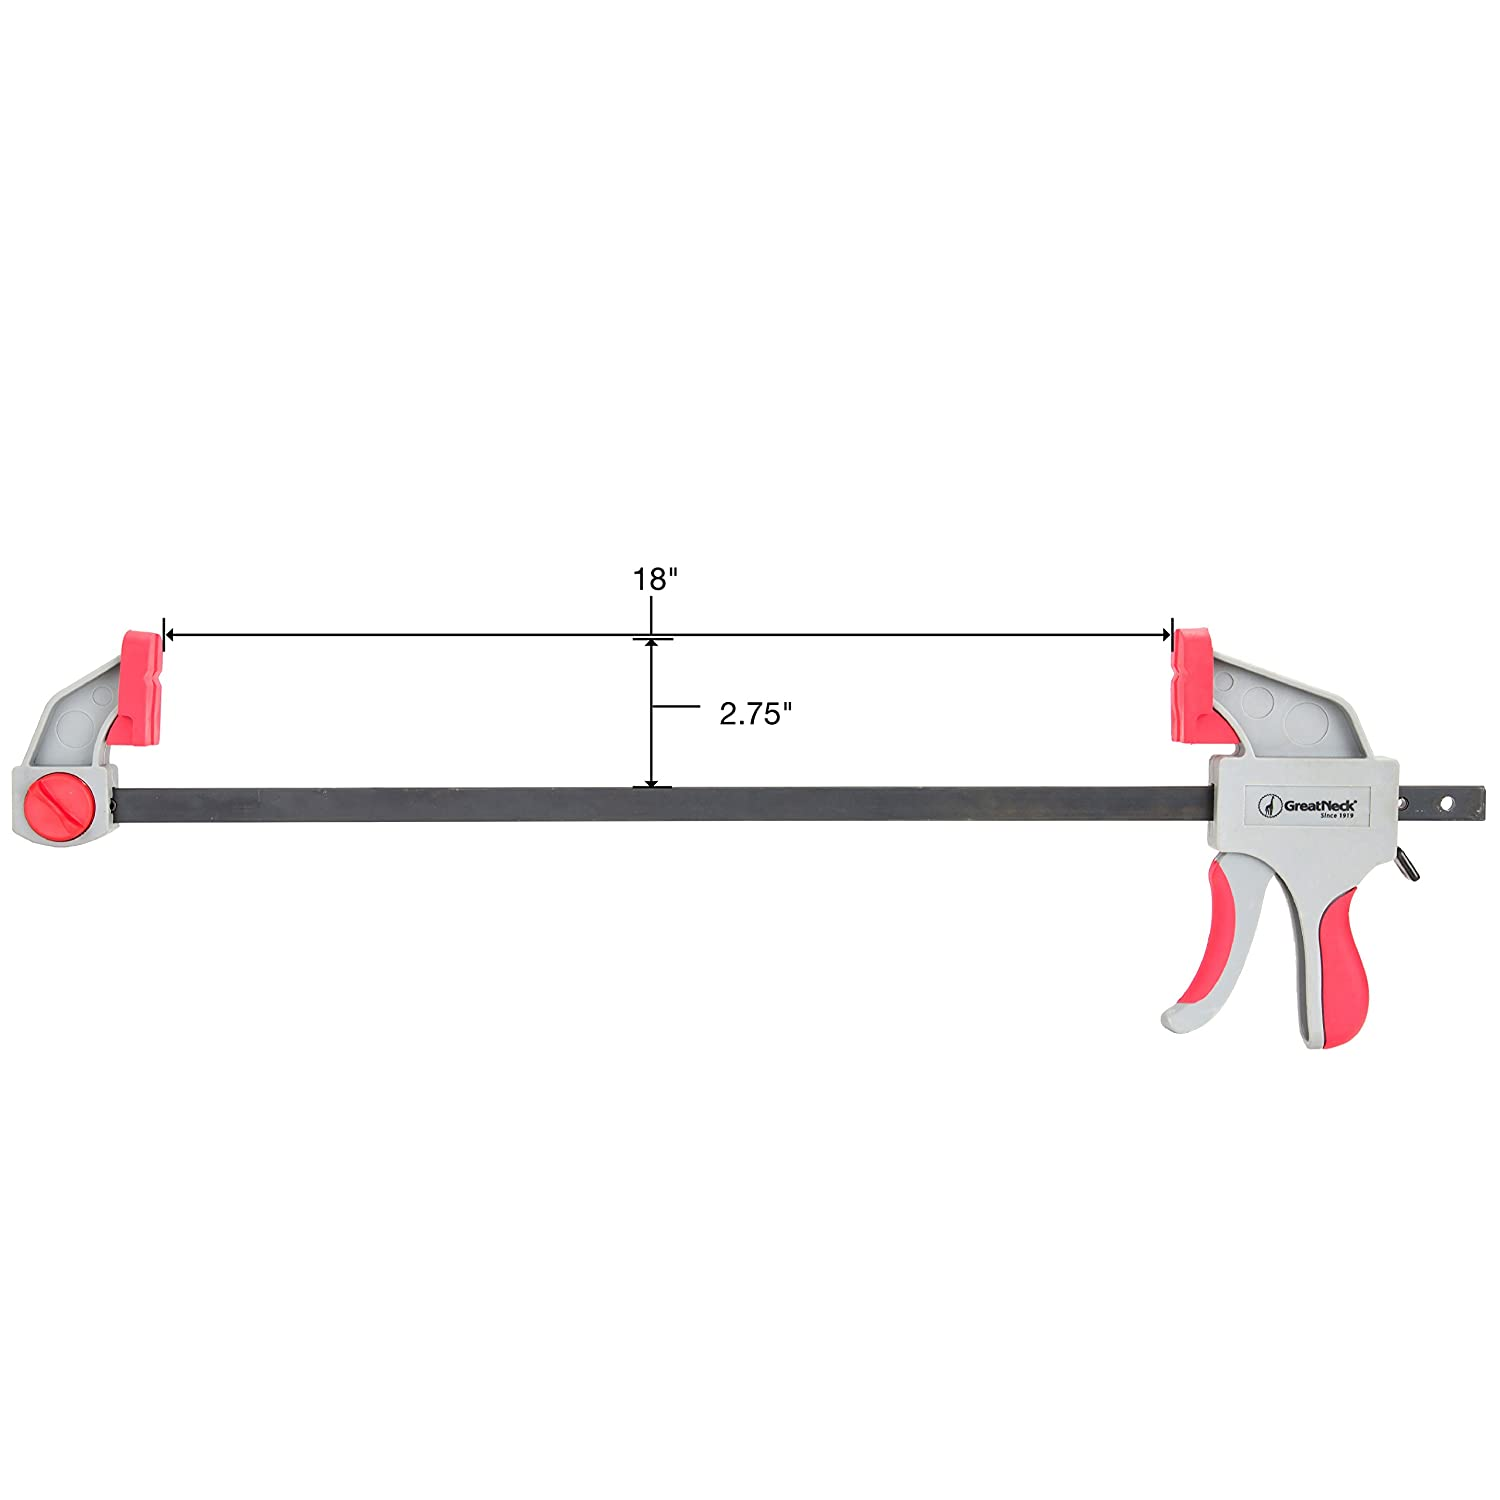 GreatNeck 59002 18 Inch Ratcheting Bar Clamp and Spreader